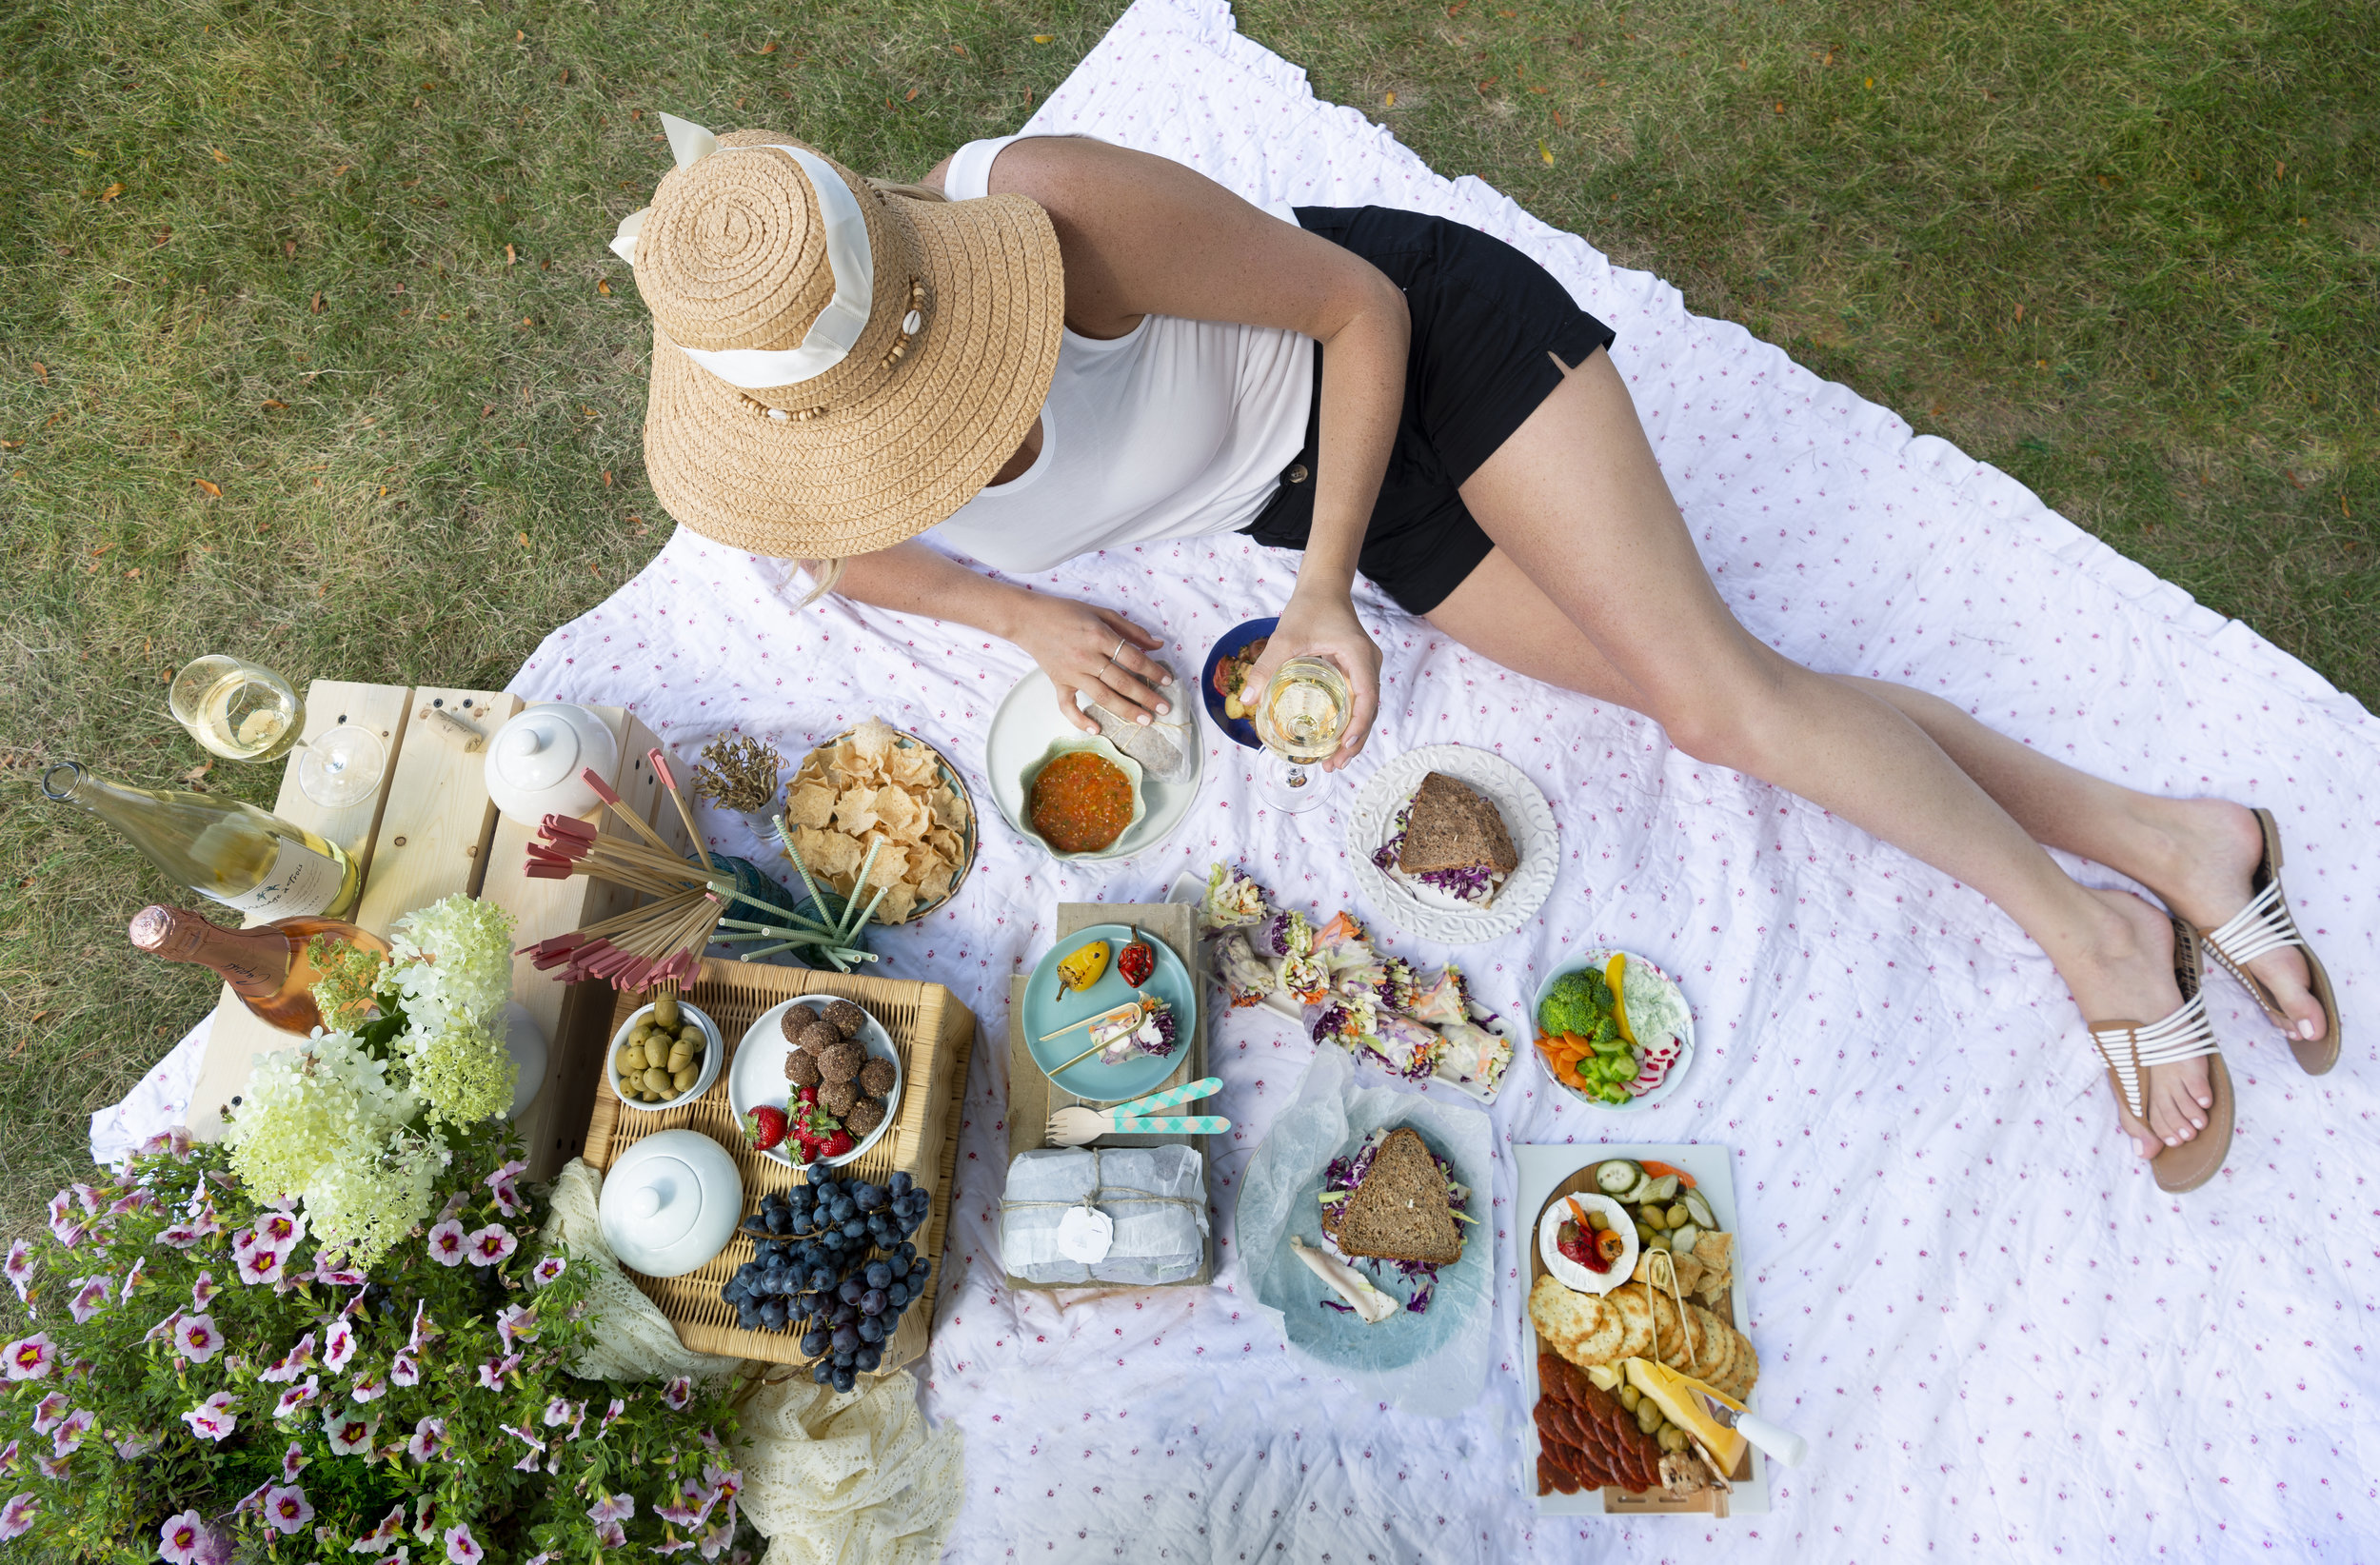 Picnic-HR-SimiJois-2019.jpg